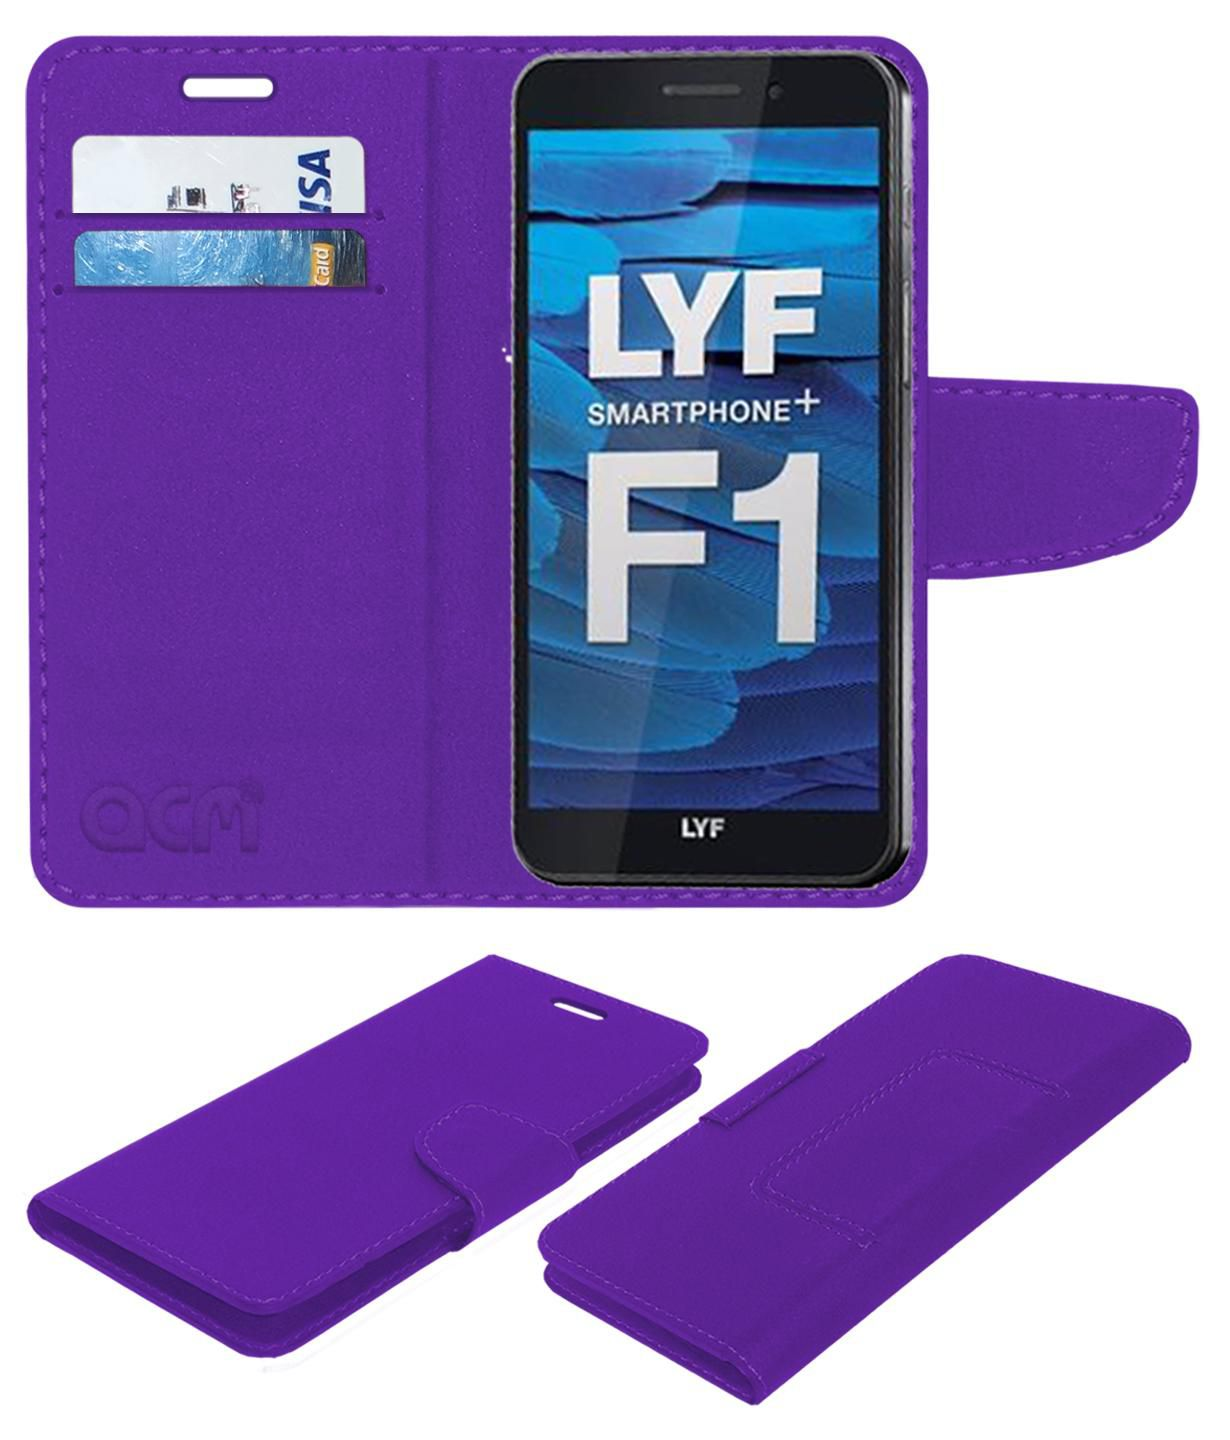 LYF Smartphone+ F1 Flip Cover by ACM - Purple